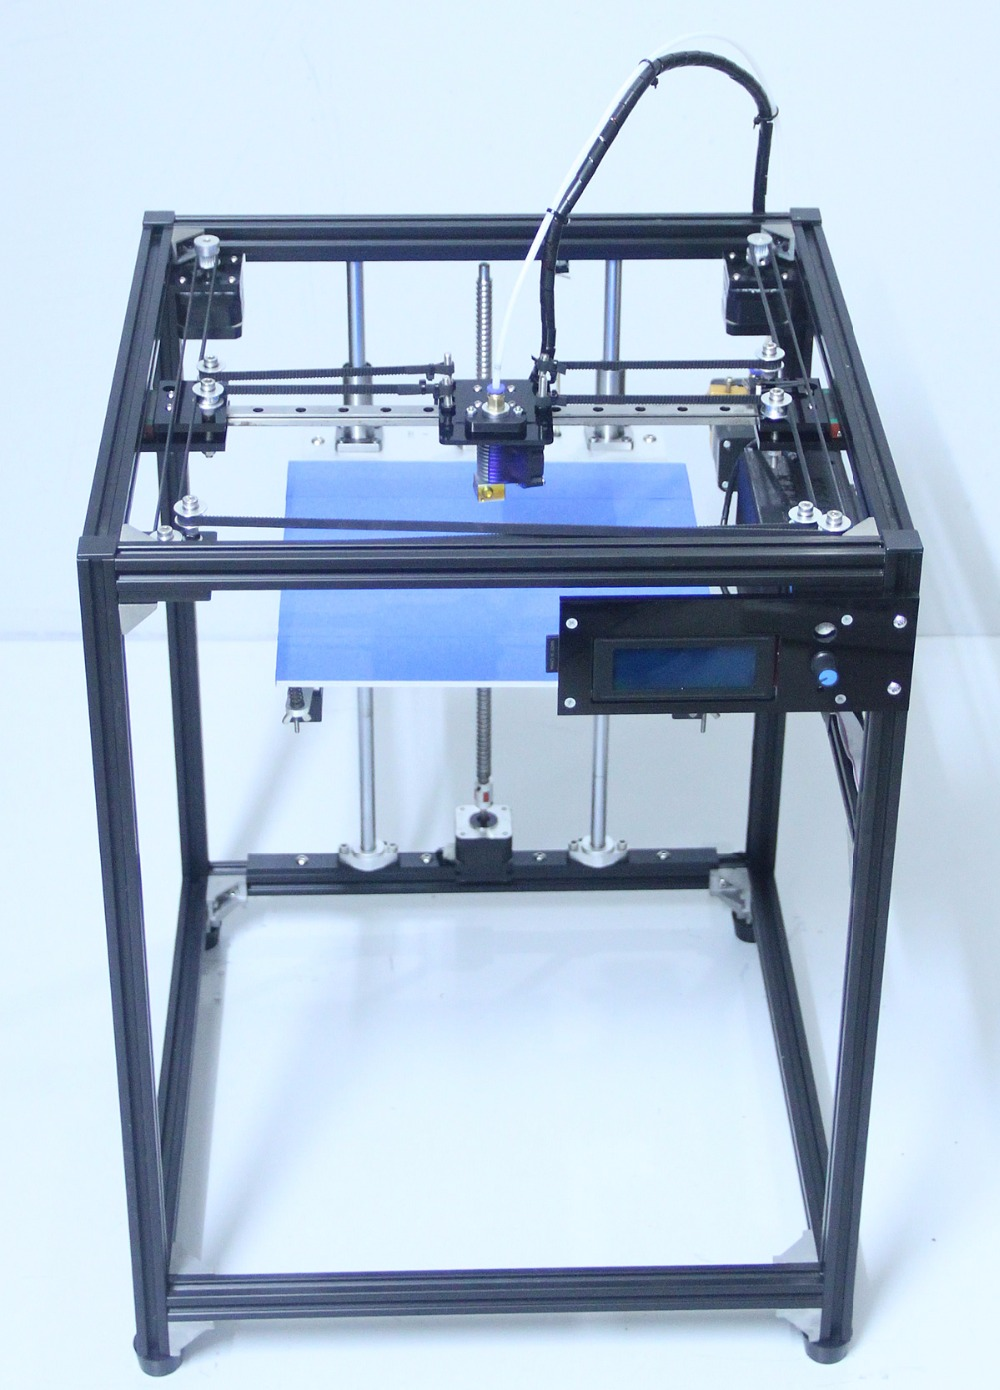 2017 black big size 3D Printer Machine Ramps corexy Full Kit 3d printer kit flsun 3d printer big pulley kossel 3d printer with one roll filament sd card fast shipping